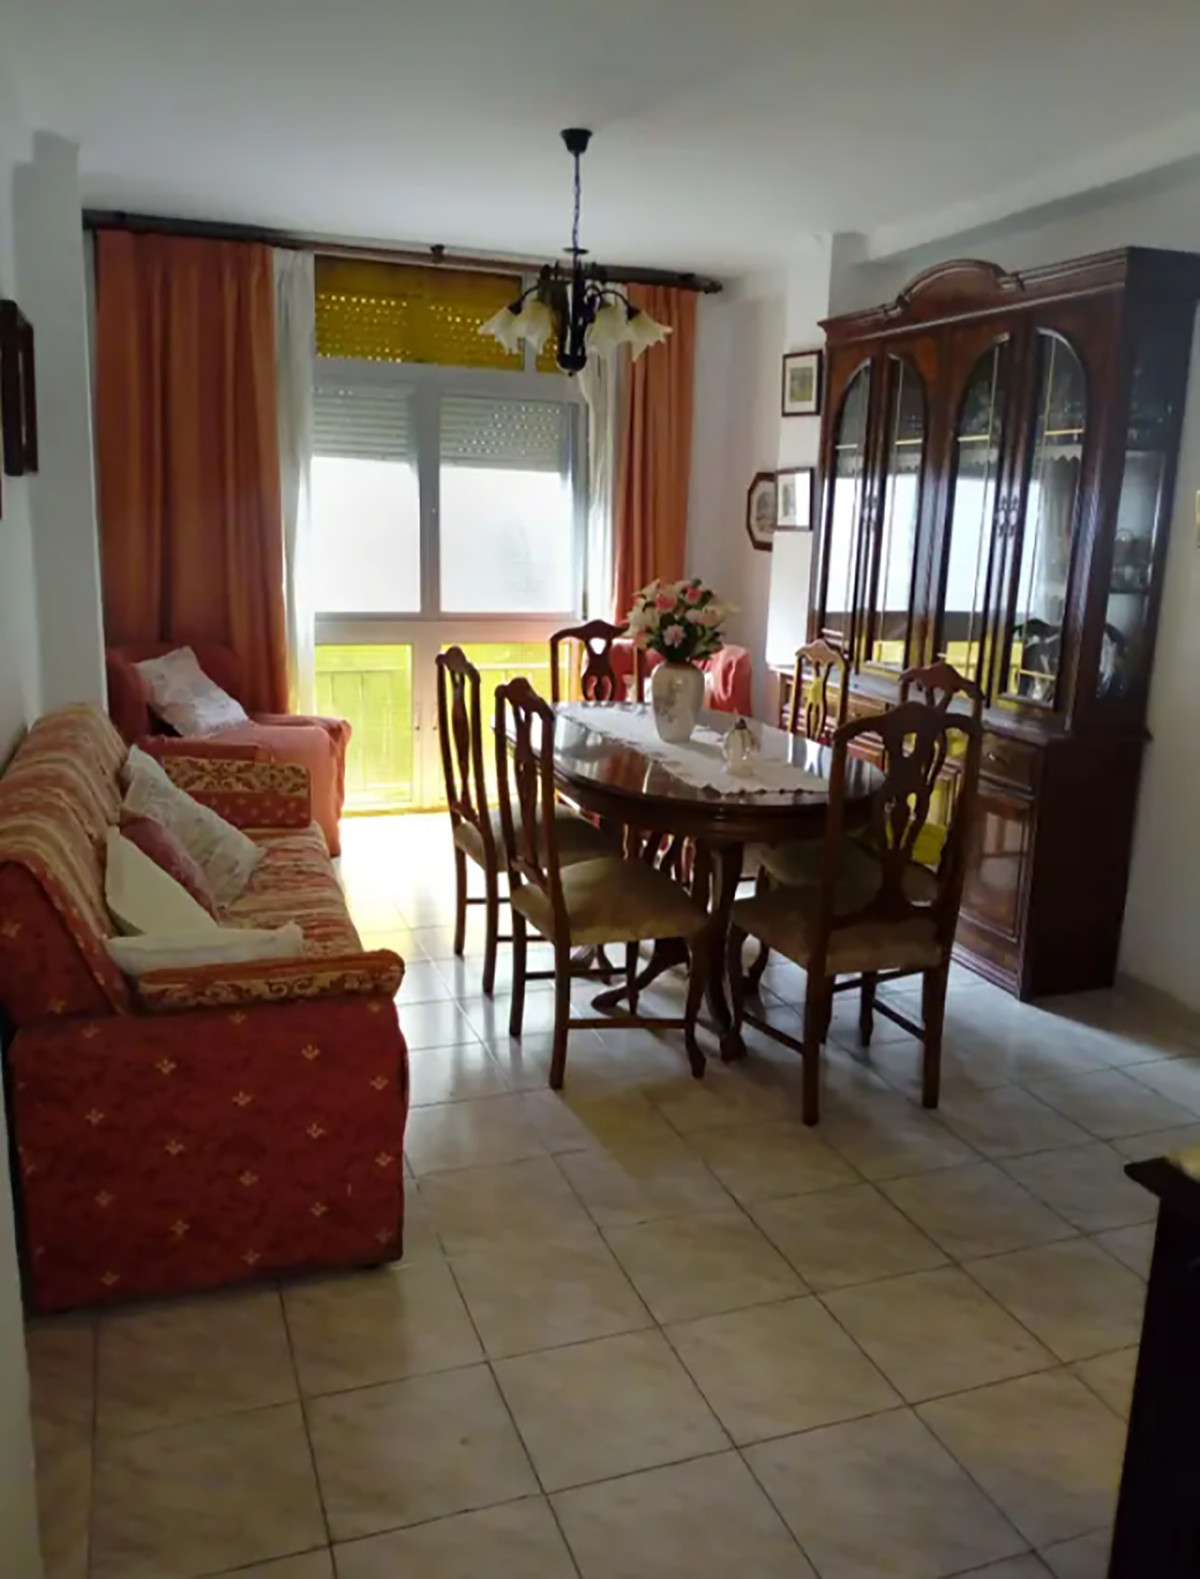 Middle Floor Apartment, Malaga East 80m from the beach, Costa del Sol. 3 Bedrooms, 1 Bathroom, Built,Spain